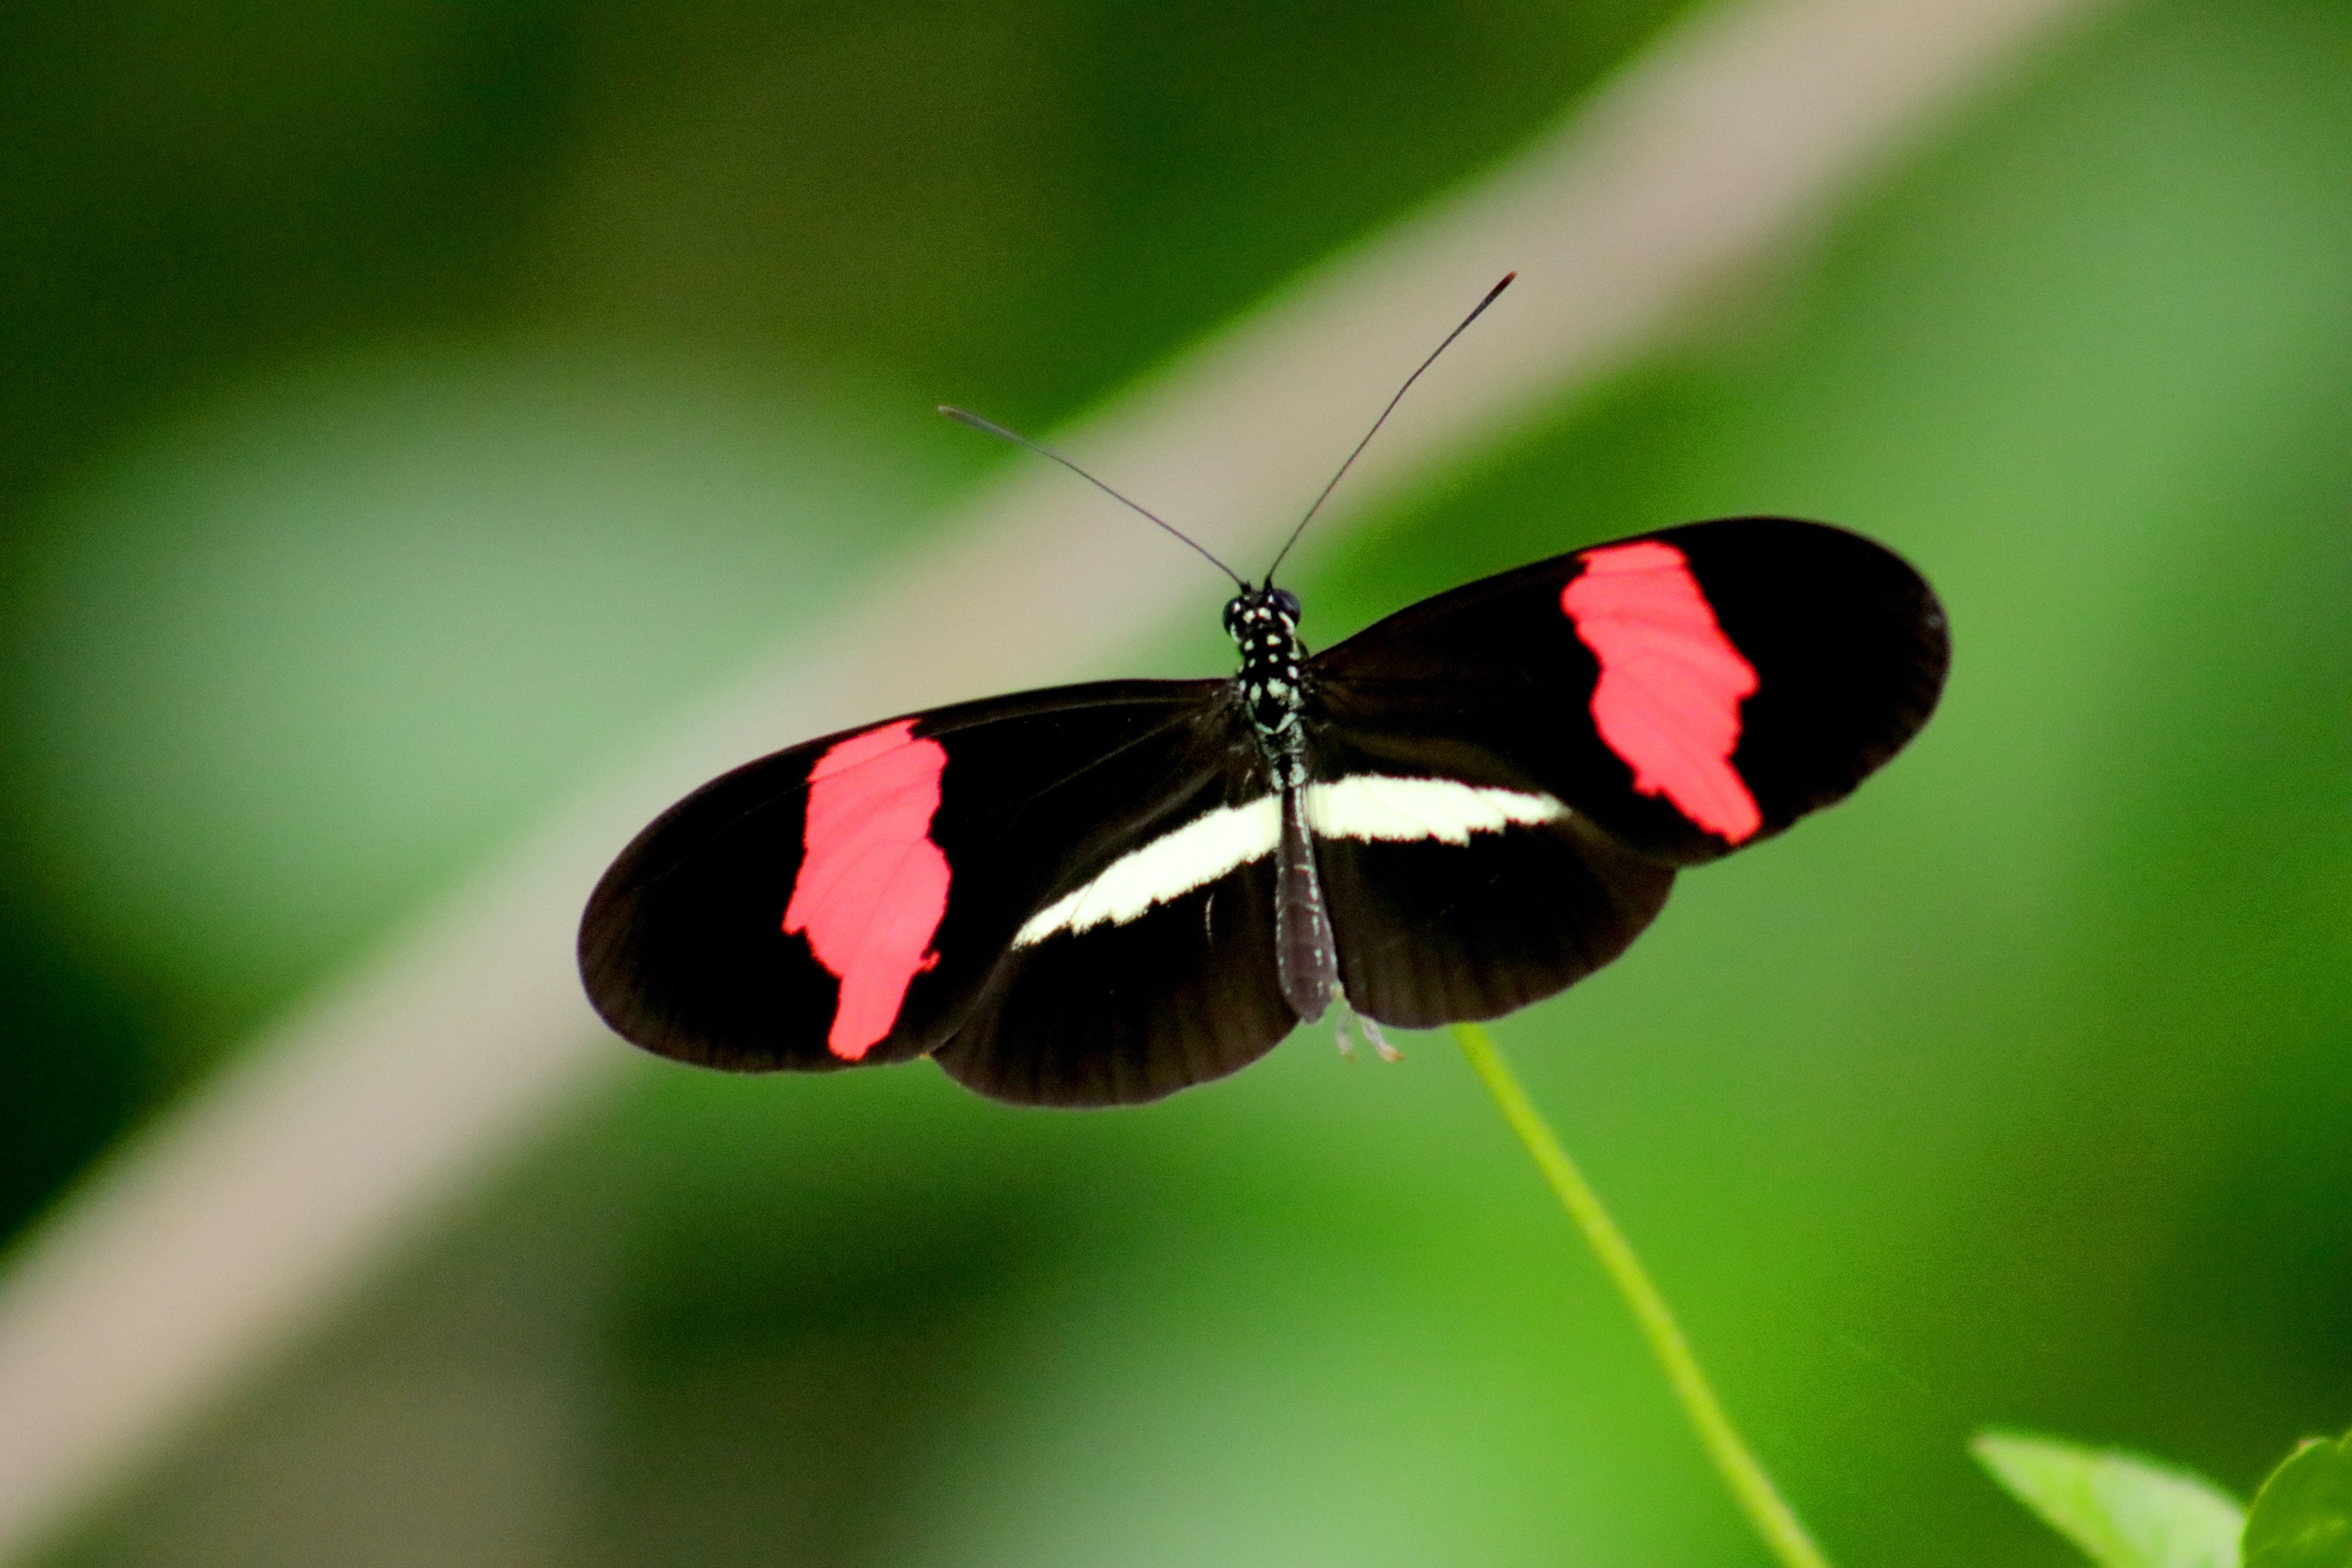 Black, Red, and White Butterfly in Closeup Photo